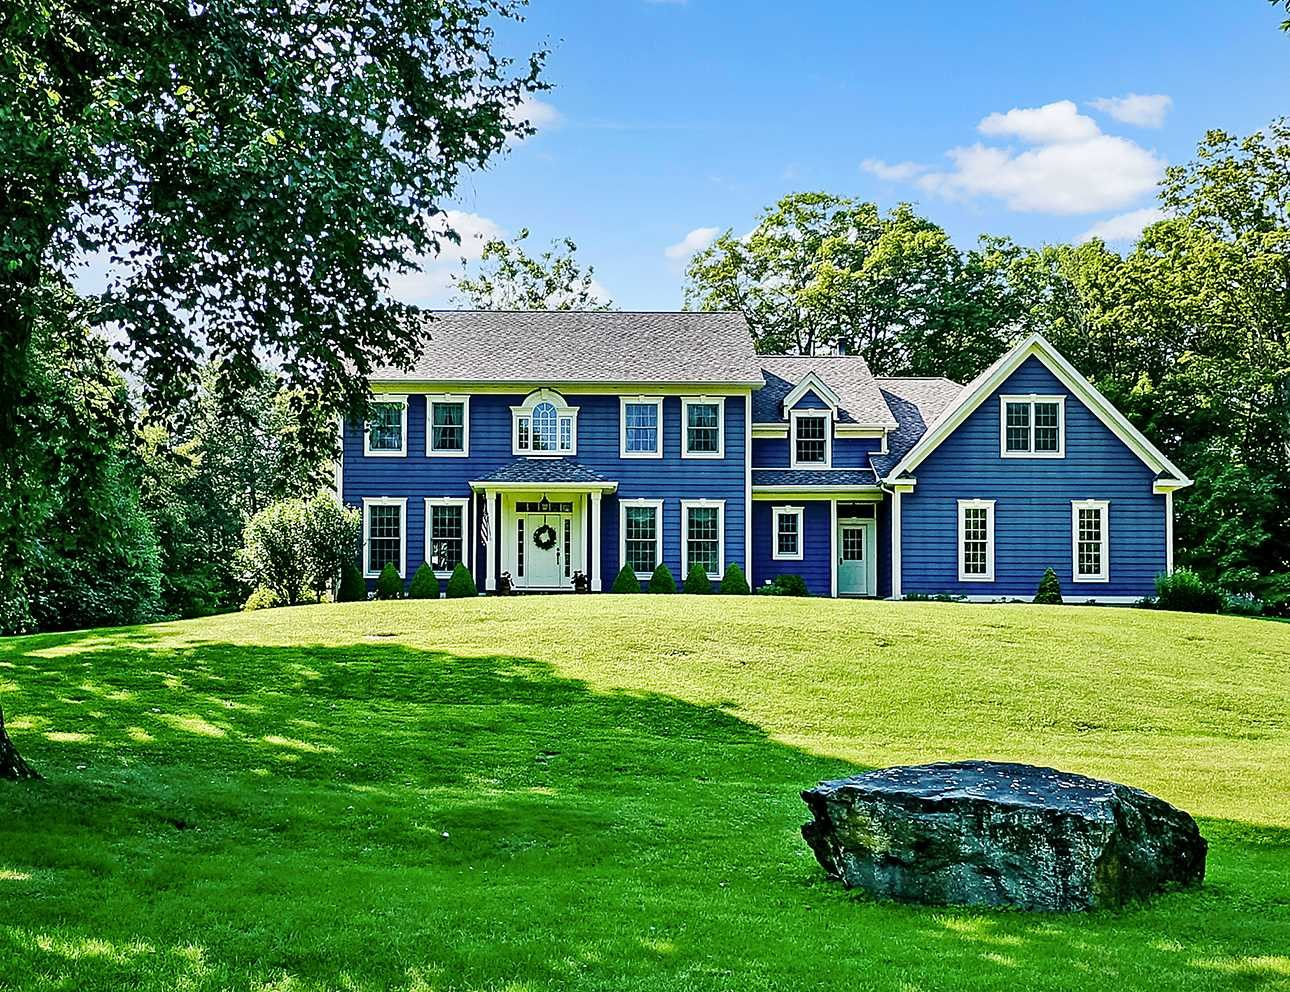 Single Family Home for Sale at 59 BARRACO BLVD 59 BARRACO BLVD Rhinebeck, New York 12572 United States